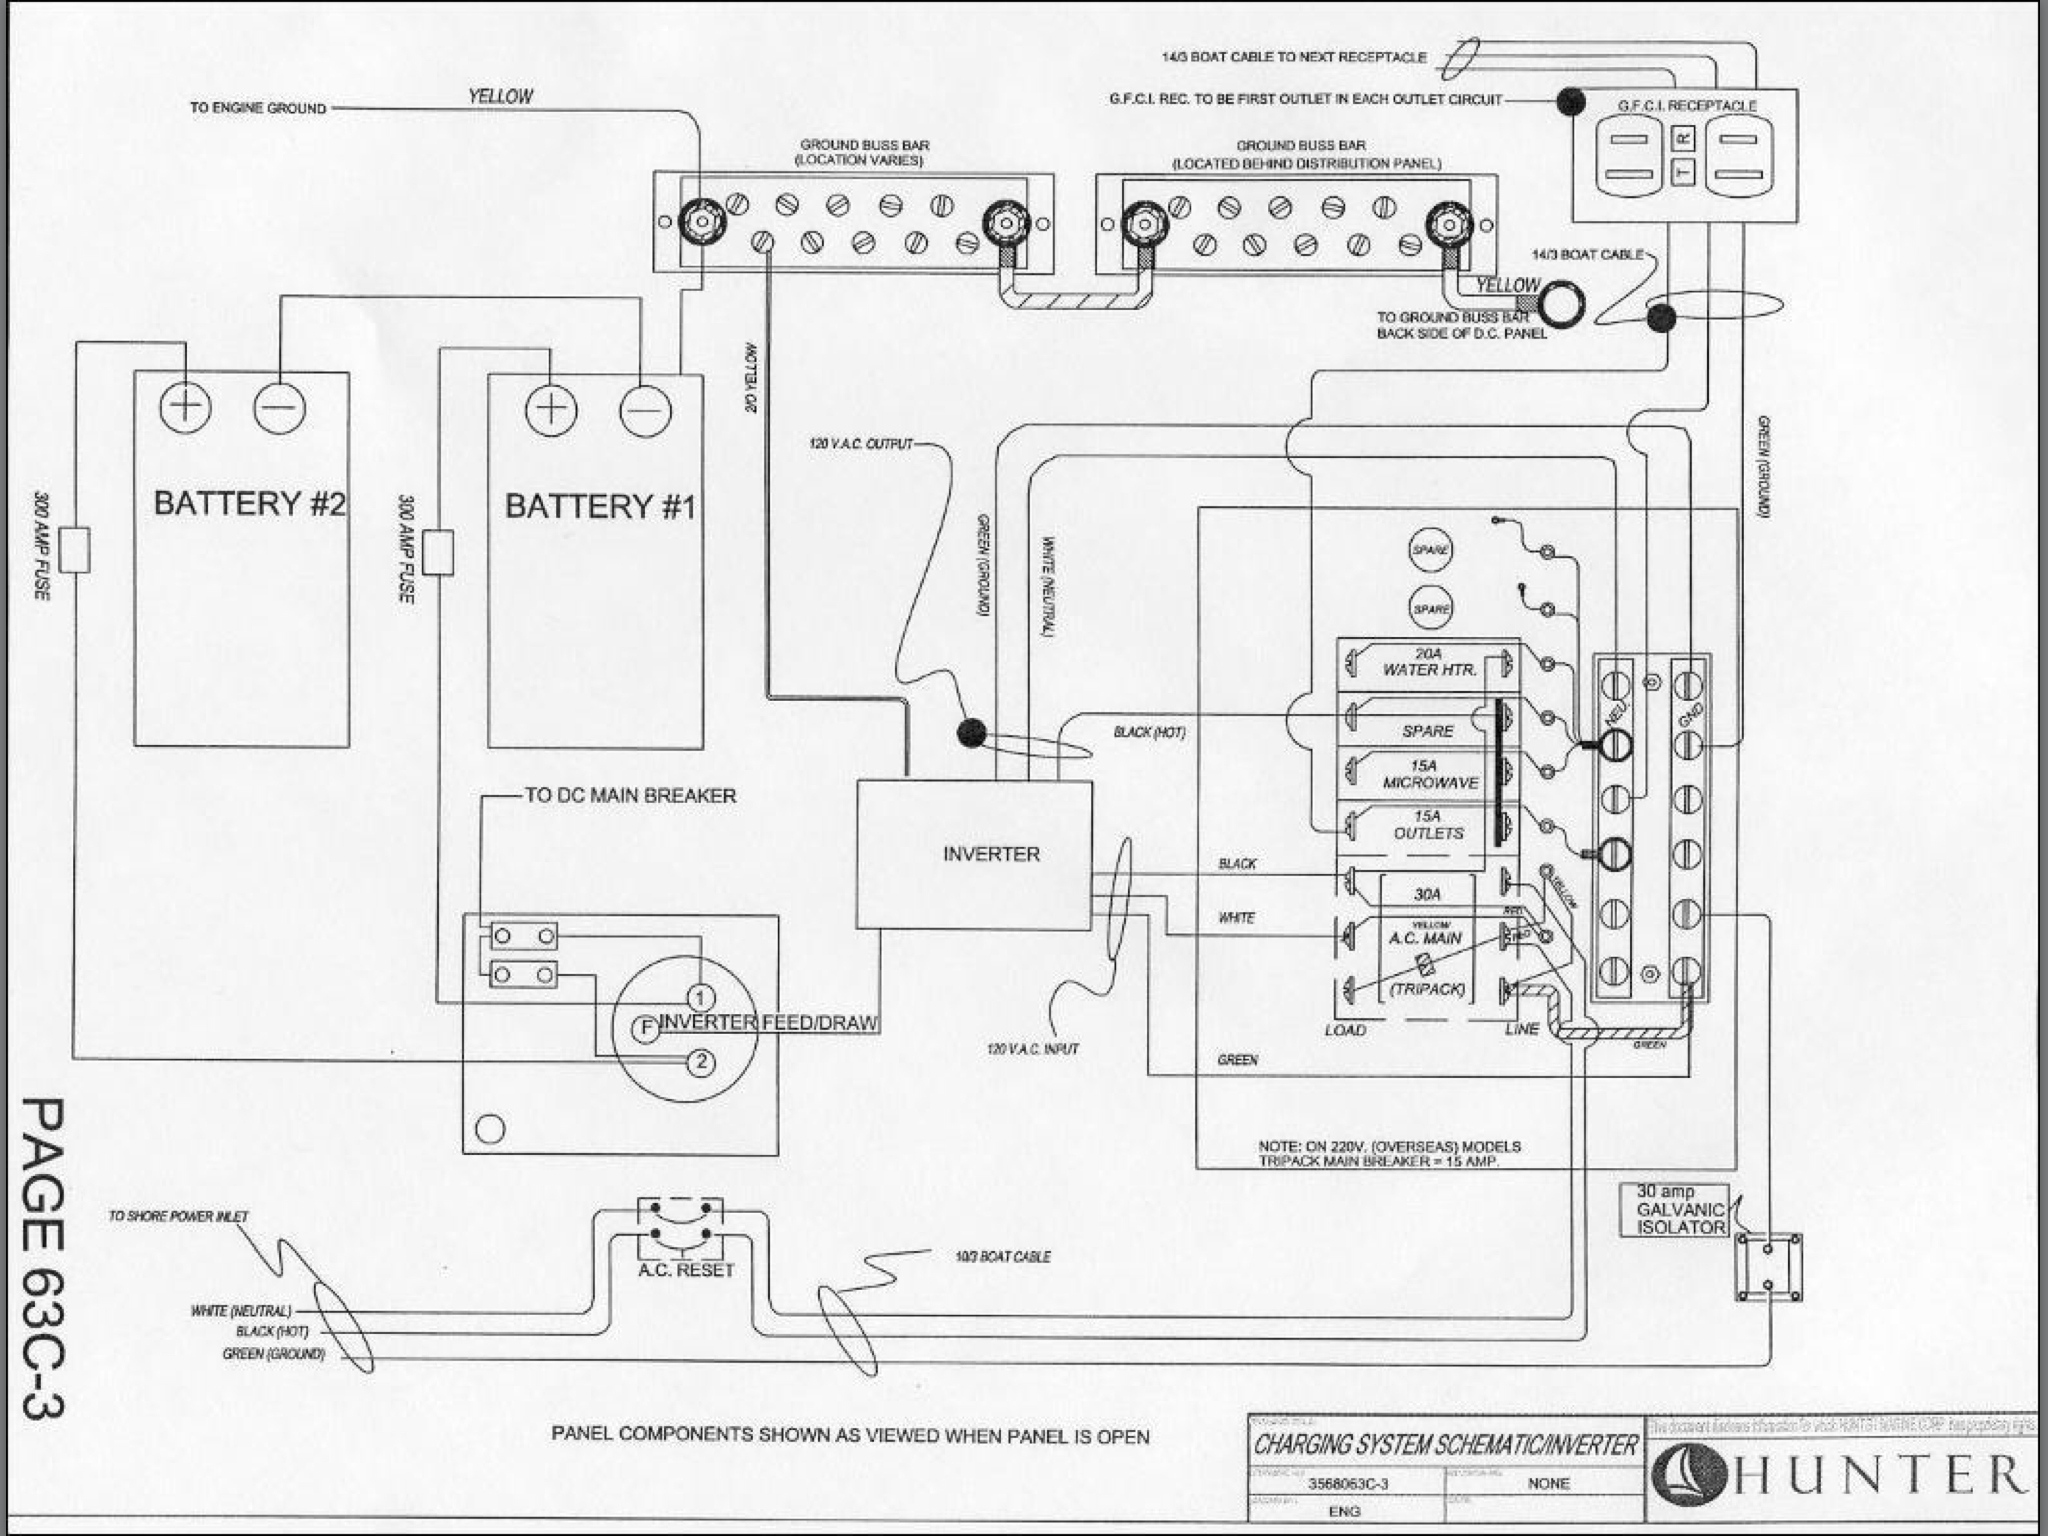 promariner battery isolator wiring diagram   42 wiring